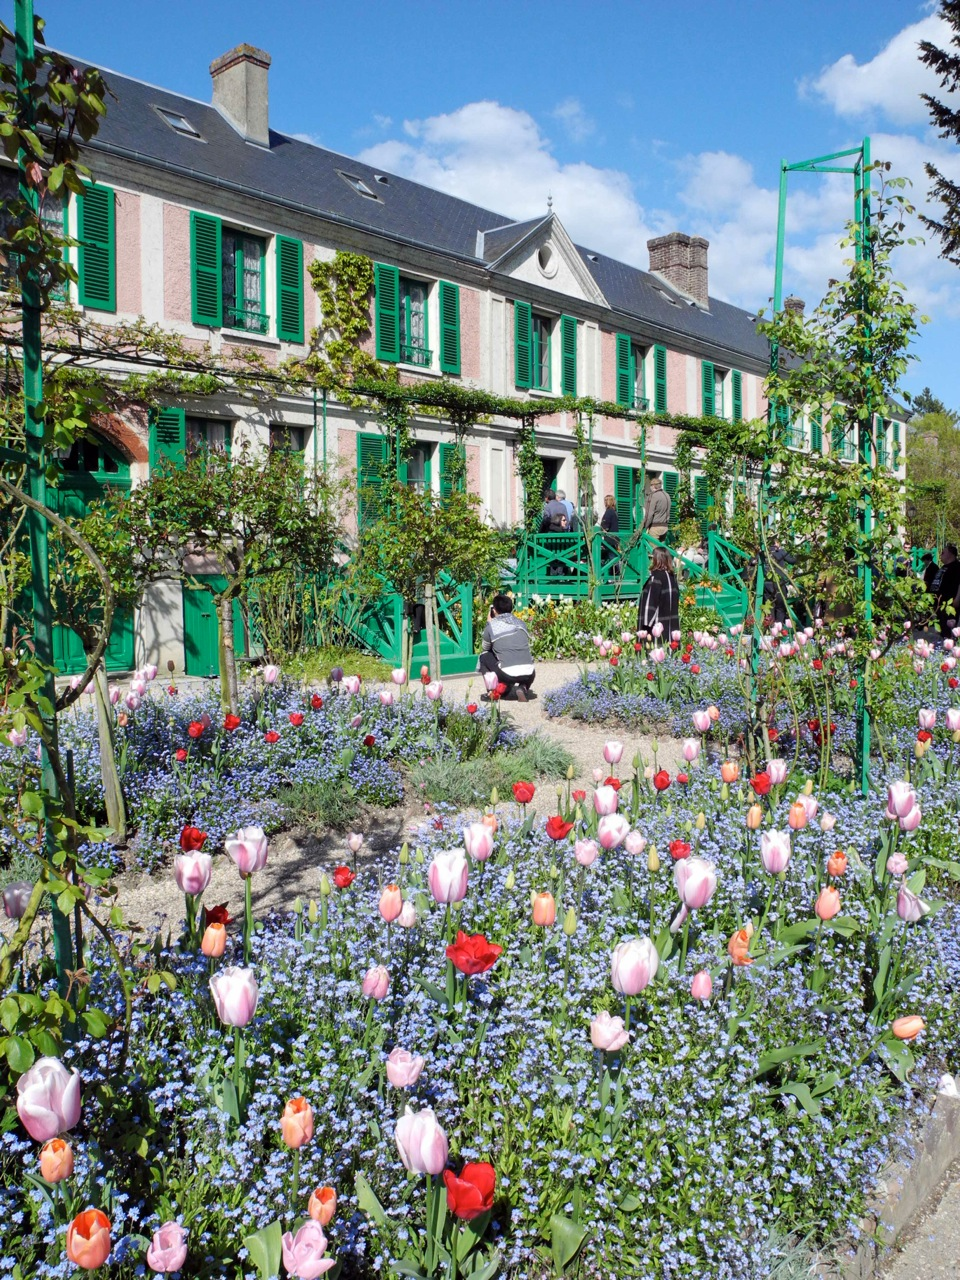 Monet's house and garden at Giverny